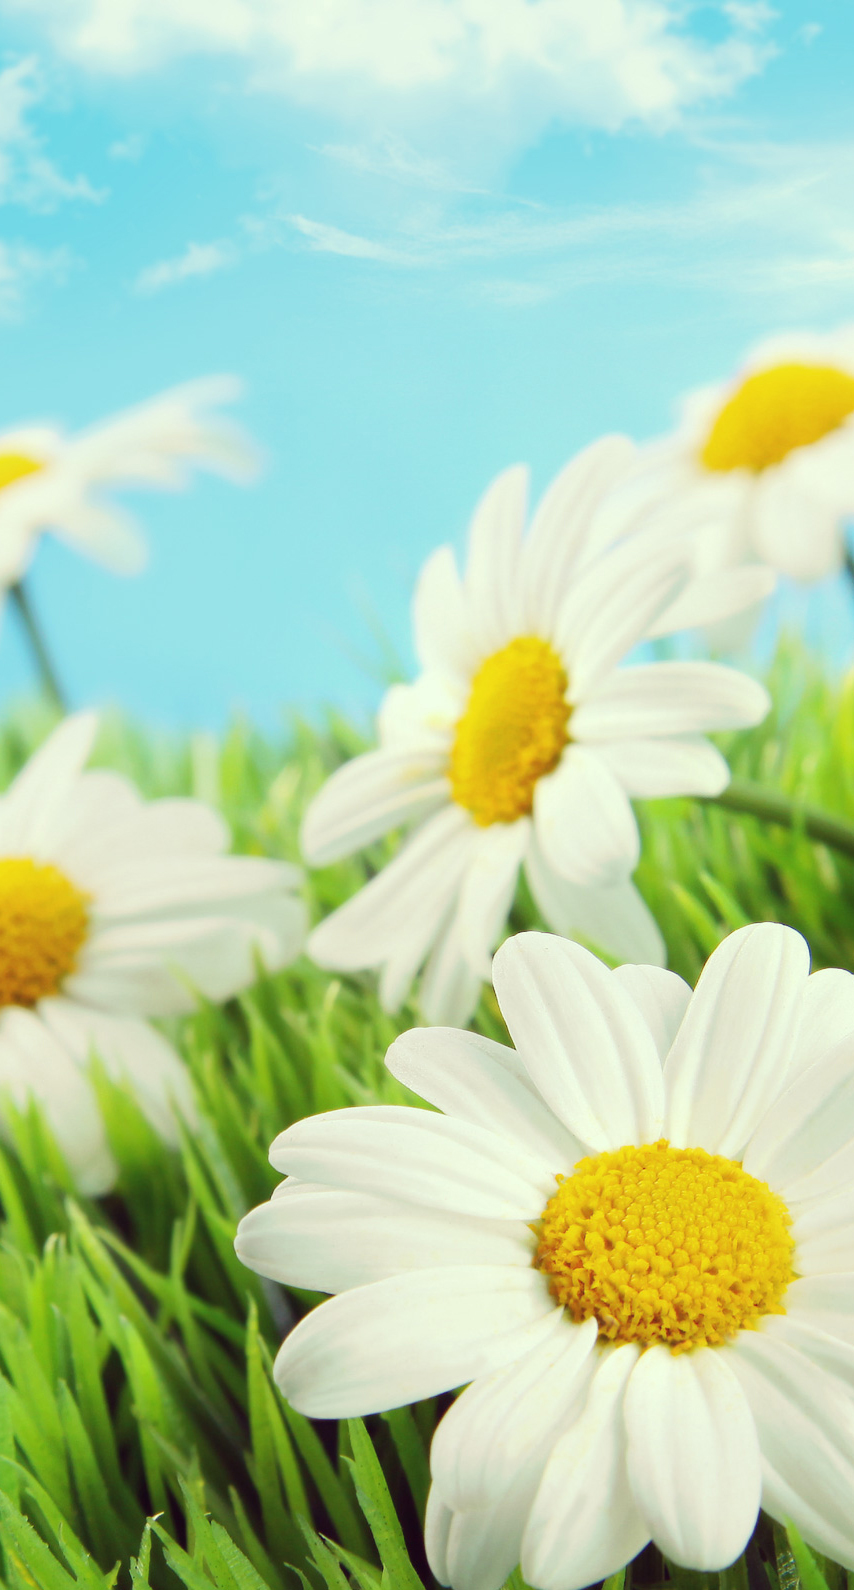 fair weather, hayfield, color, flora, garden, blooming, petal, season, growth, lawn, chamomile